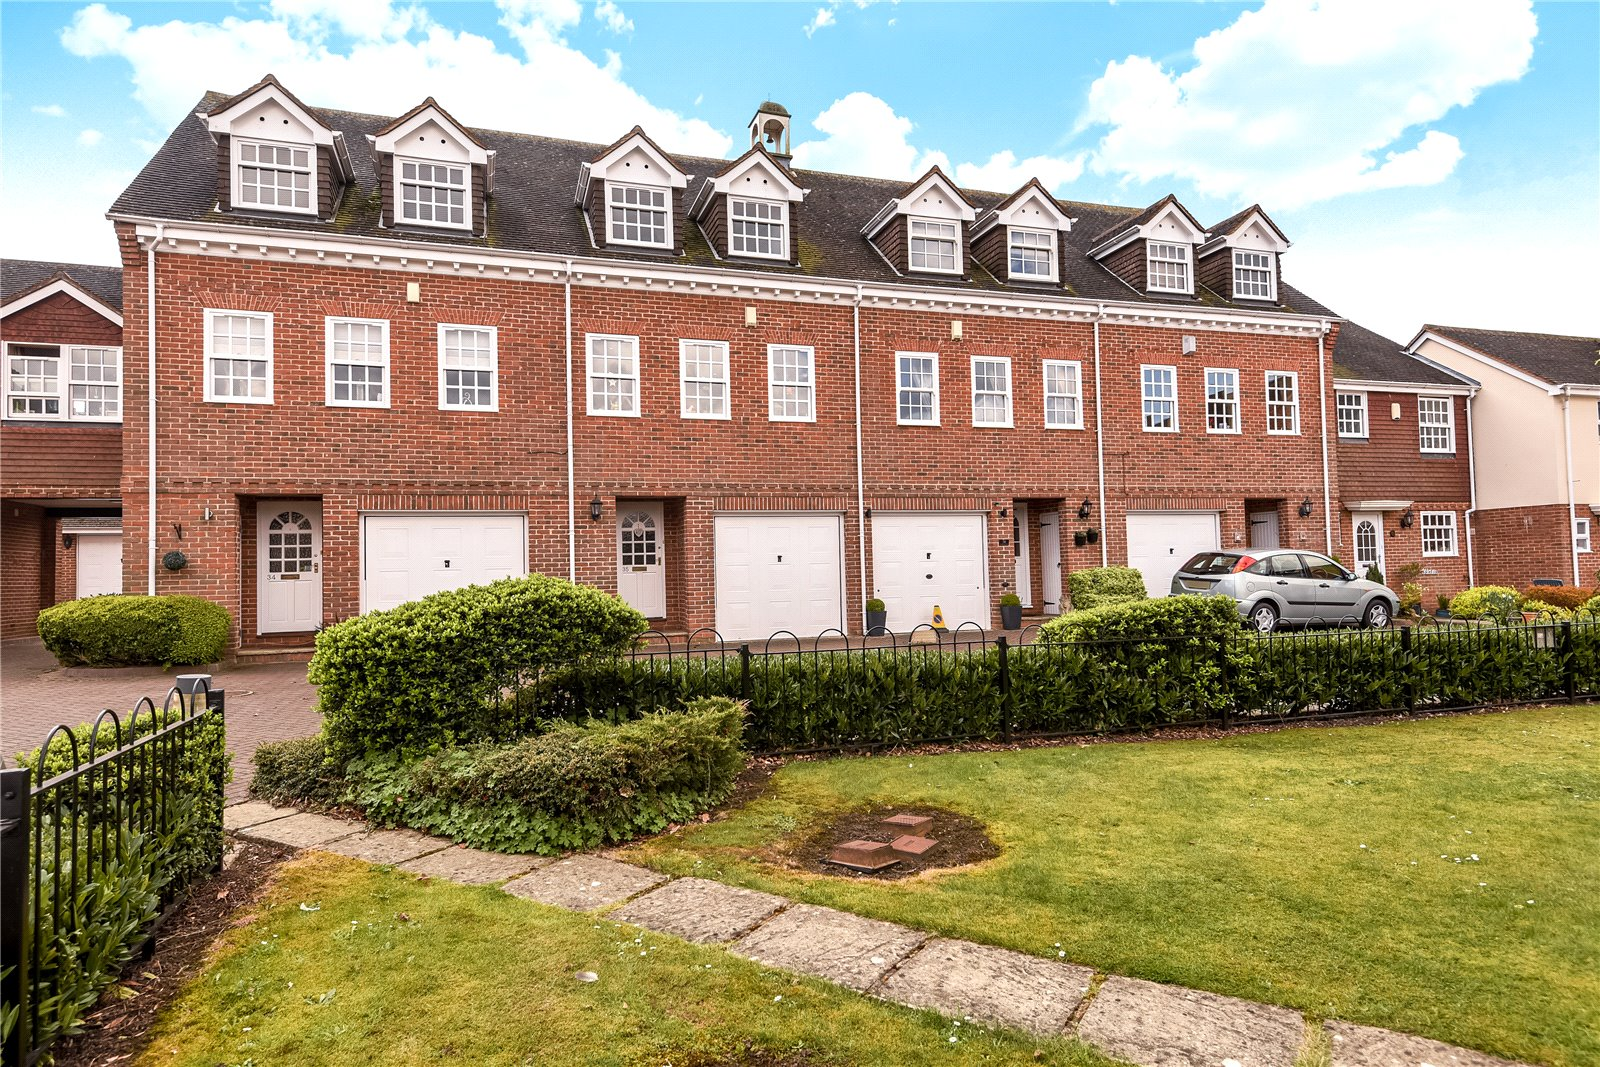 4 Bedrooms Terraced House For Sale In Calcott Park Yateley Hampshire GU46